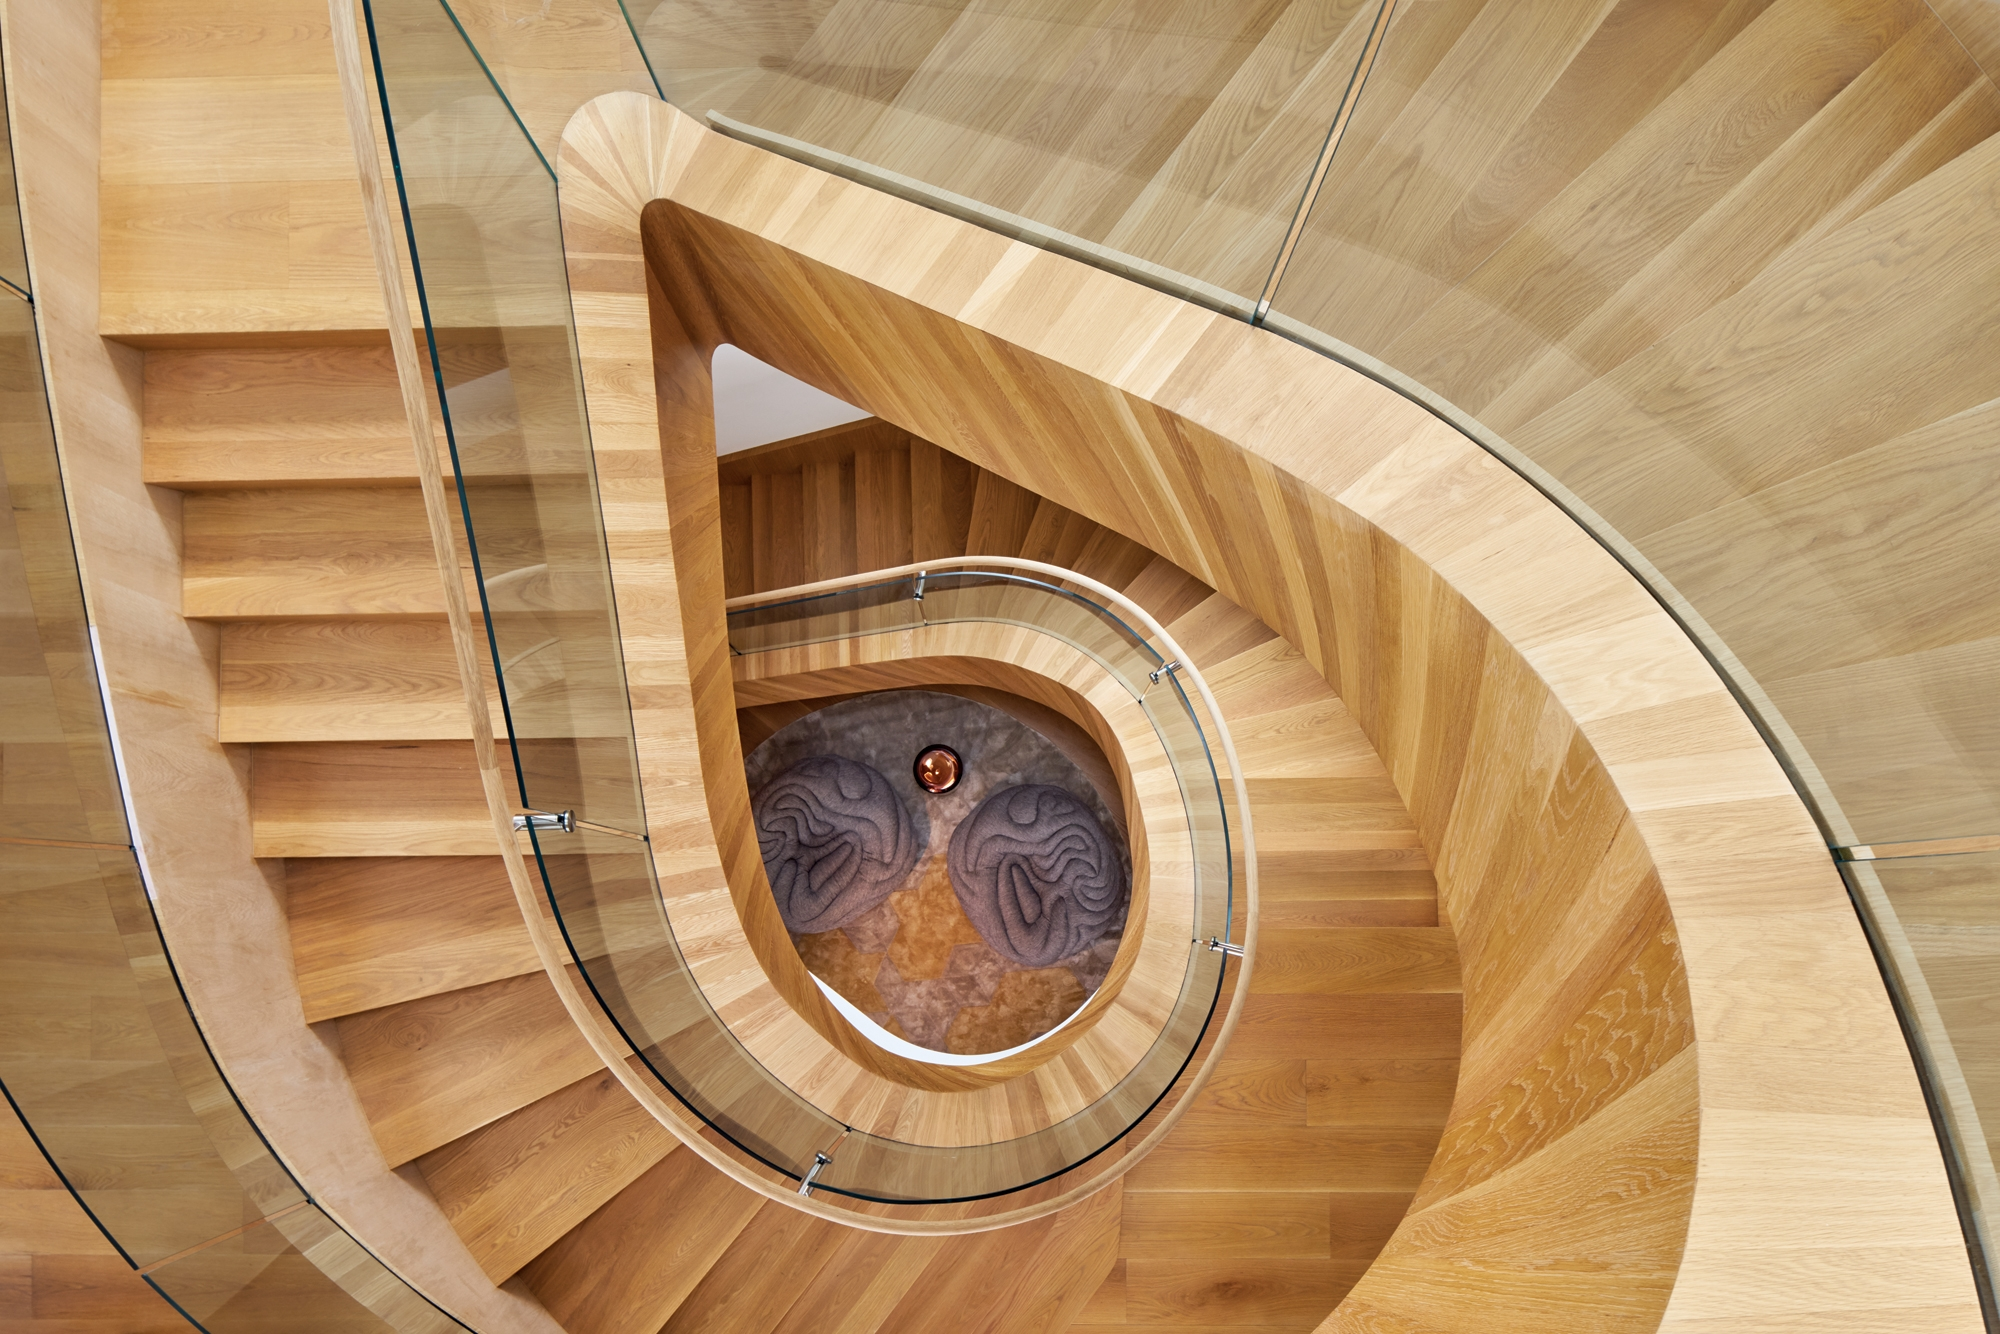 8 Simply Amazing Spiral Staircases Interior Design Magazine   Spiral Staircase Los Angeles   Old Fashioned   Most Efficient   Double Spiral   Rome   Topanga Canyon